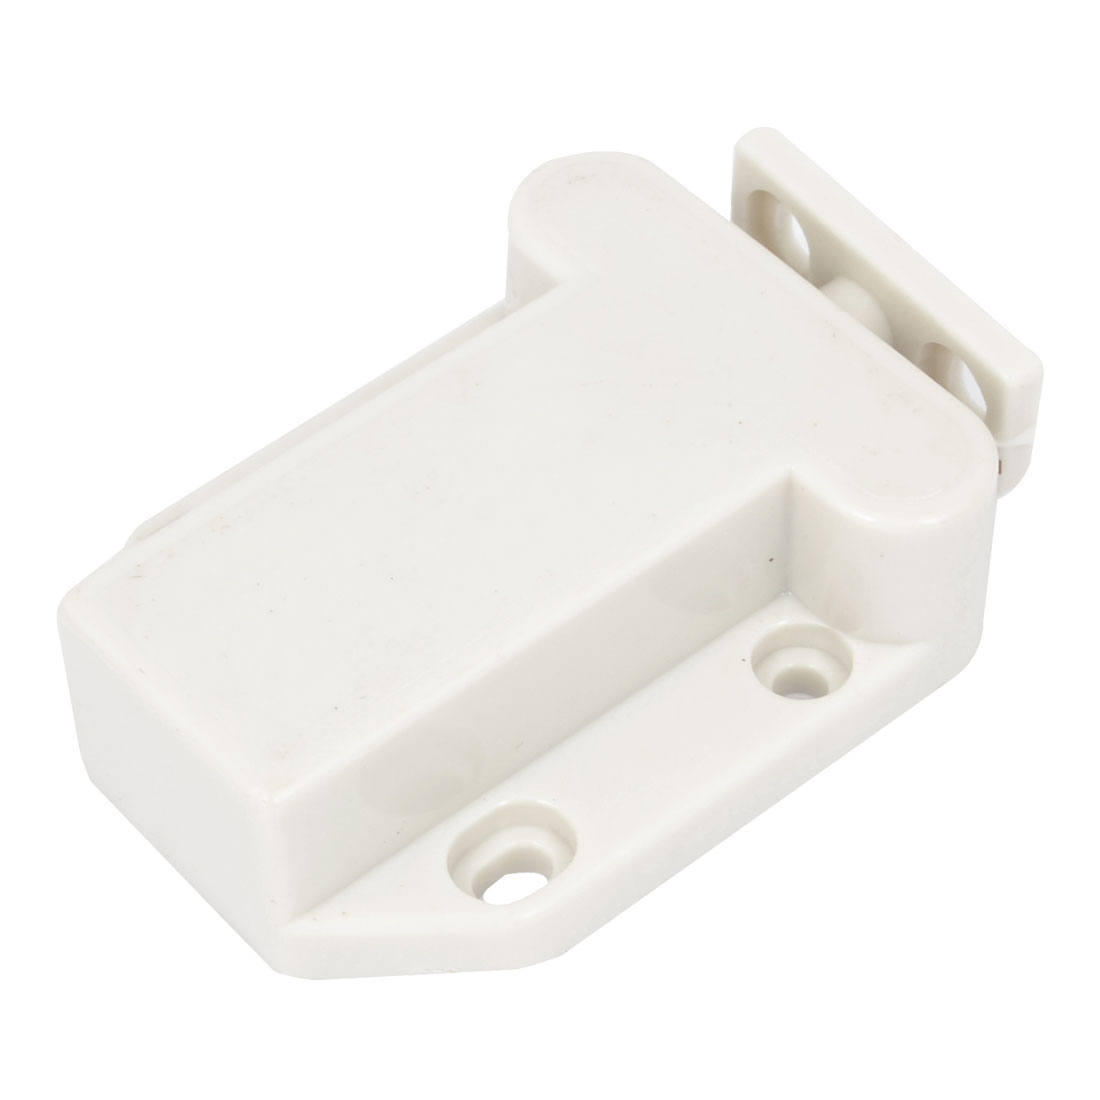 Household Cupboard Furniture Door Catch Latch White 4.3cm Width